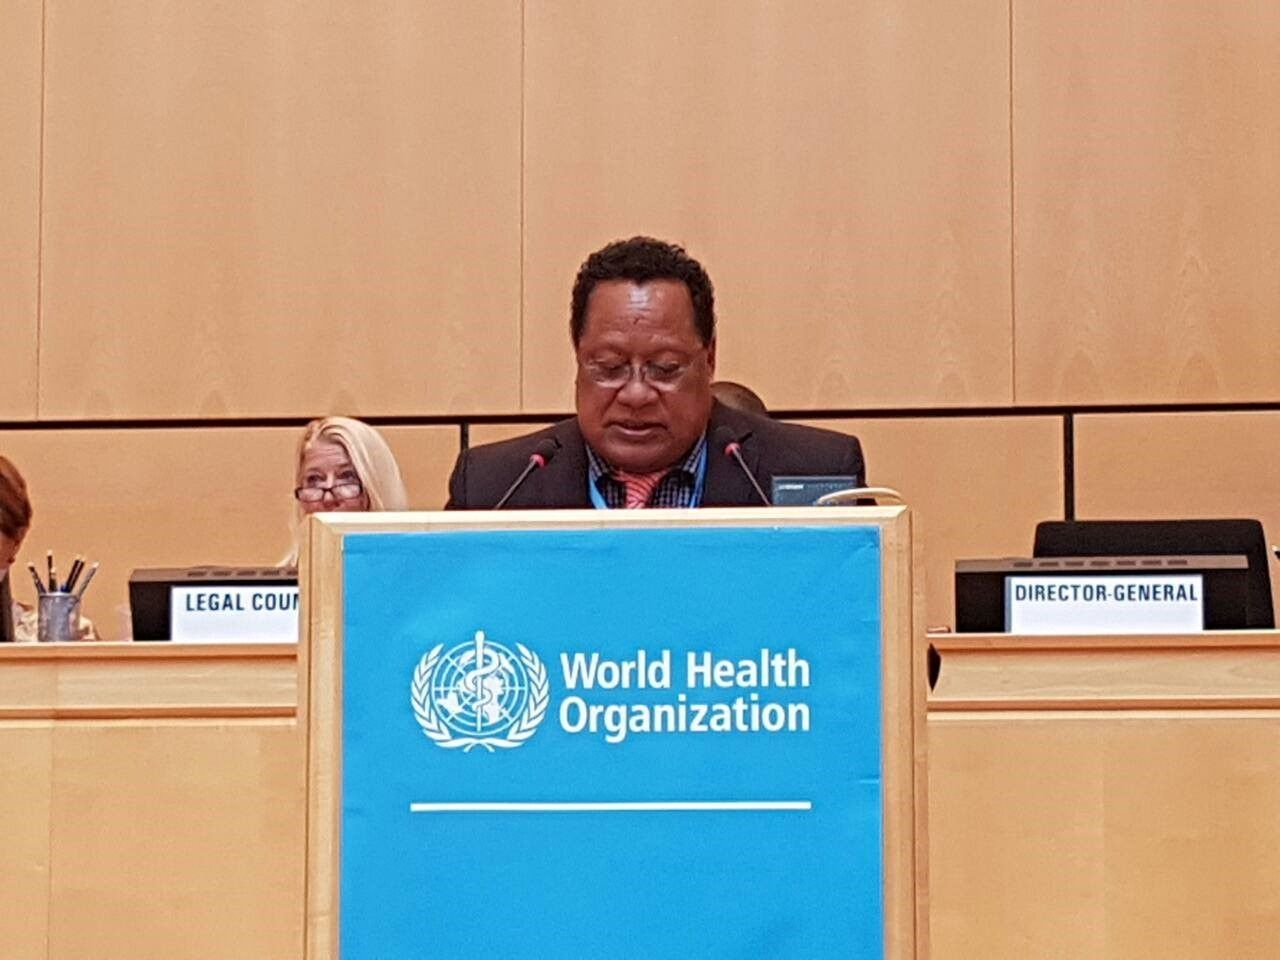 Solomon Islands Health Minister present a case for Taiwan inclusion in the World Health Assembly Meeting